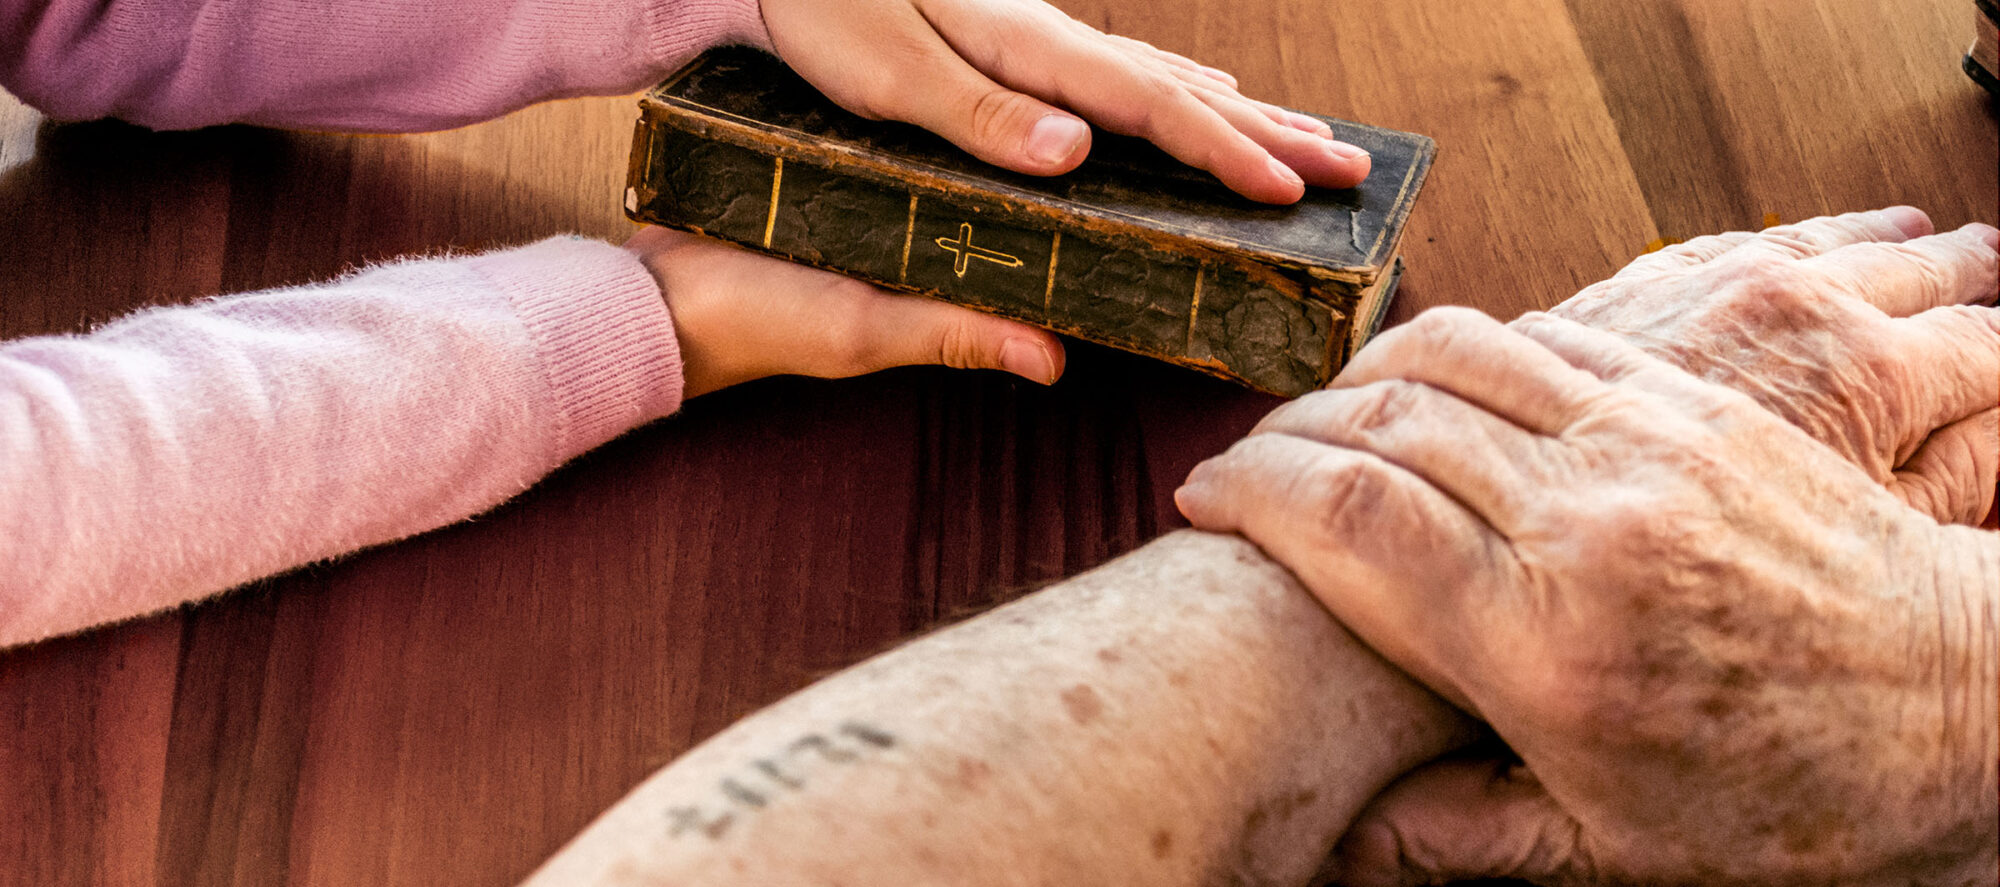 Close Up Hands Of Great Grandmother With  Auschwitz Concentration Camp Number Showing Old Holy Bible